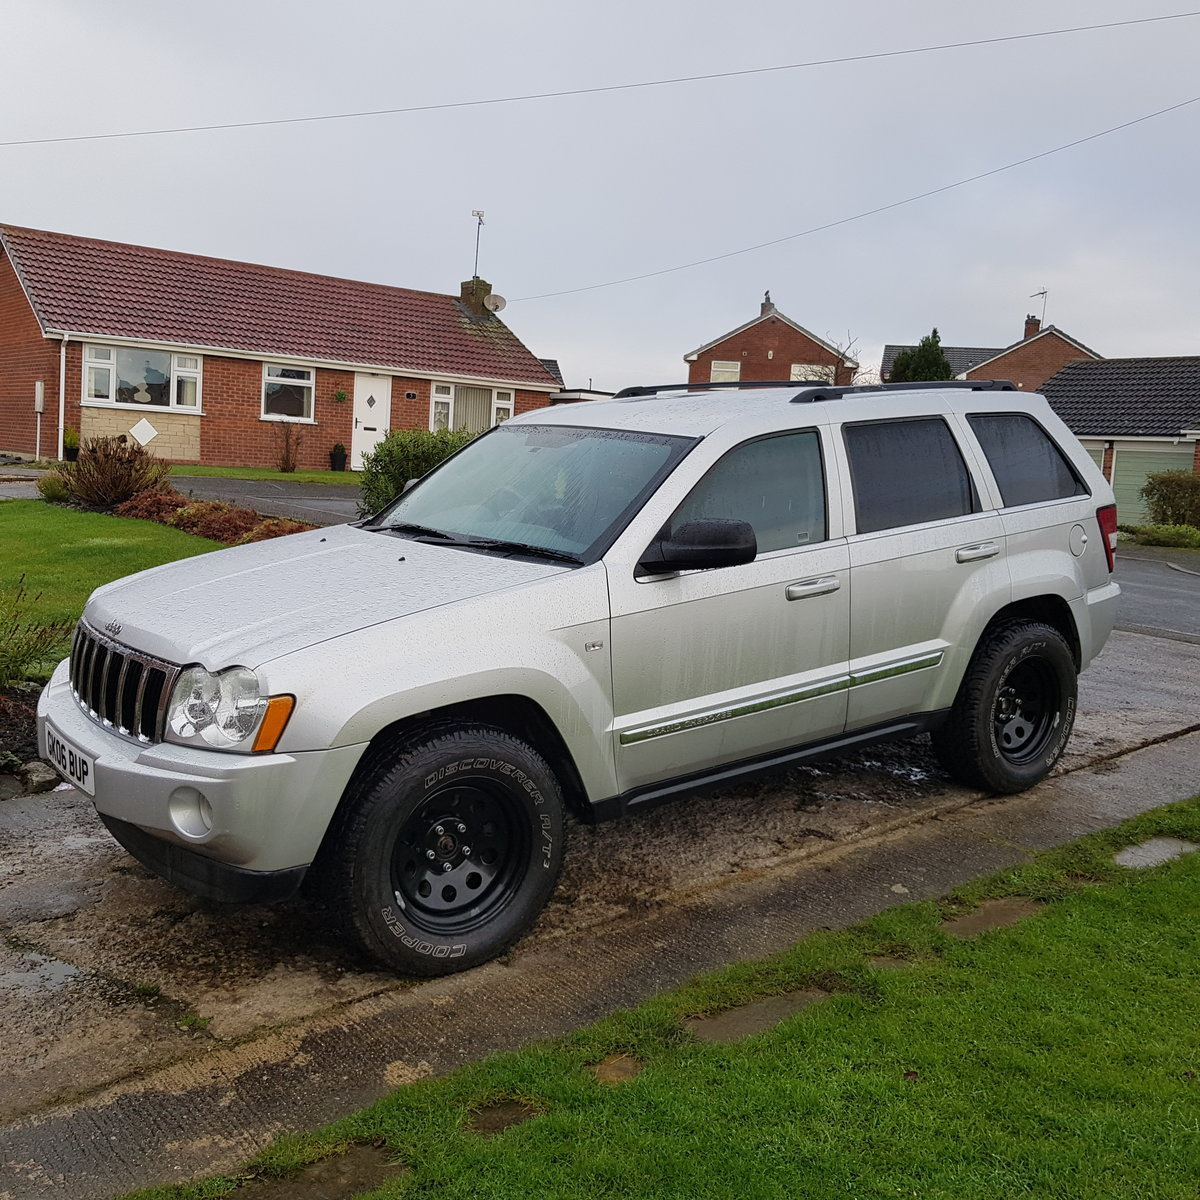 2006 Grand cherokee*new wheels/tyres*long mot*l For Sale (picture 1 of 6)